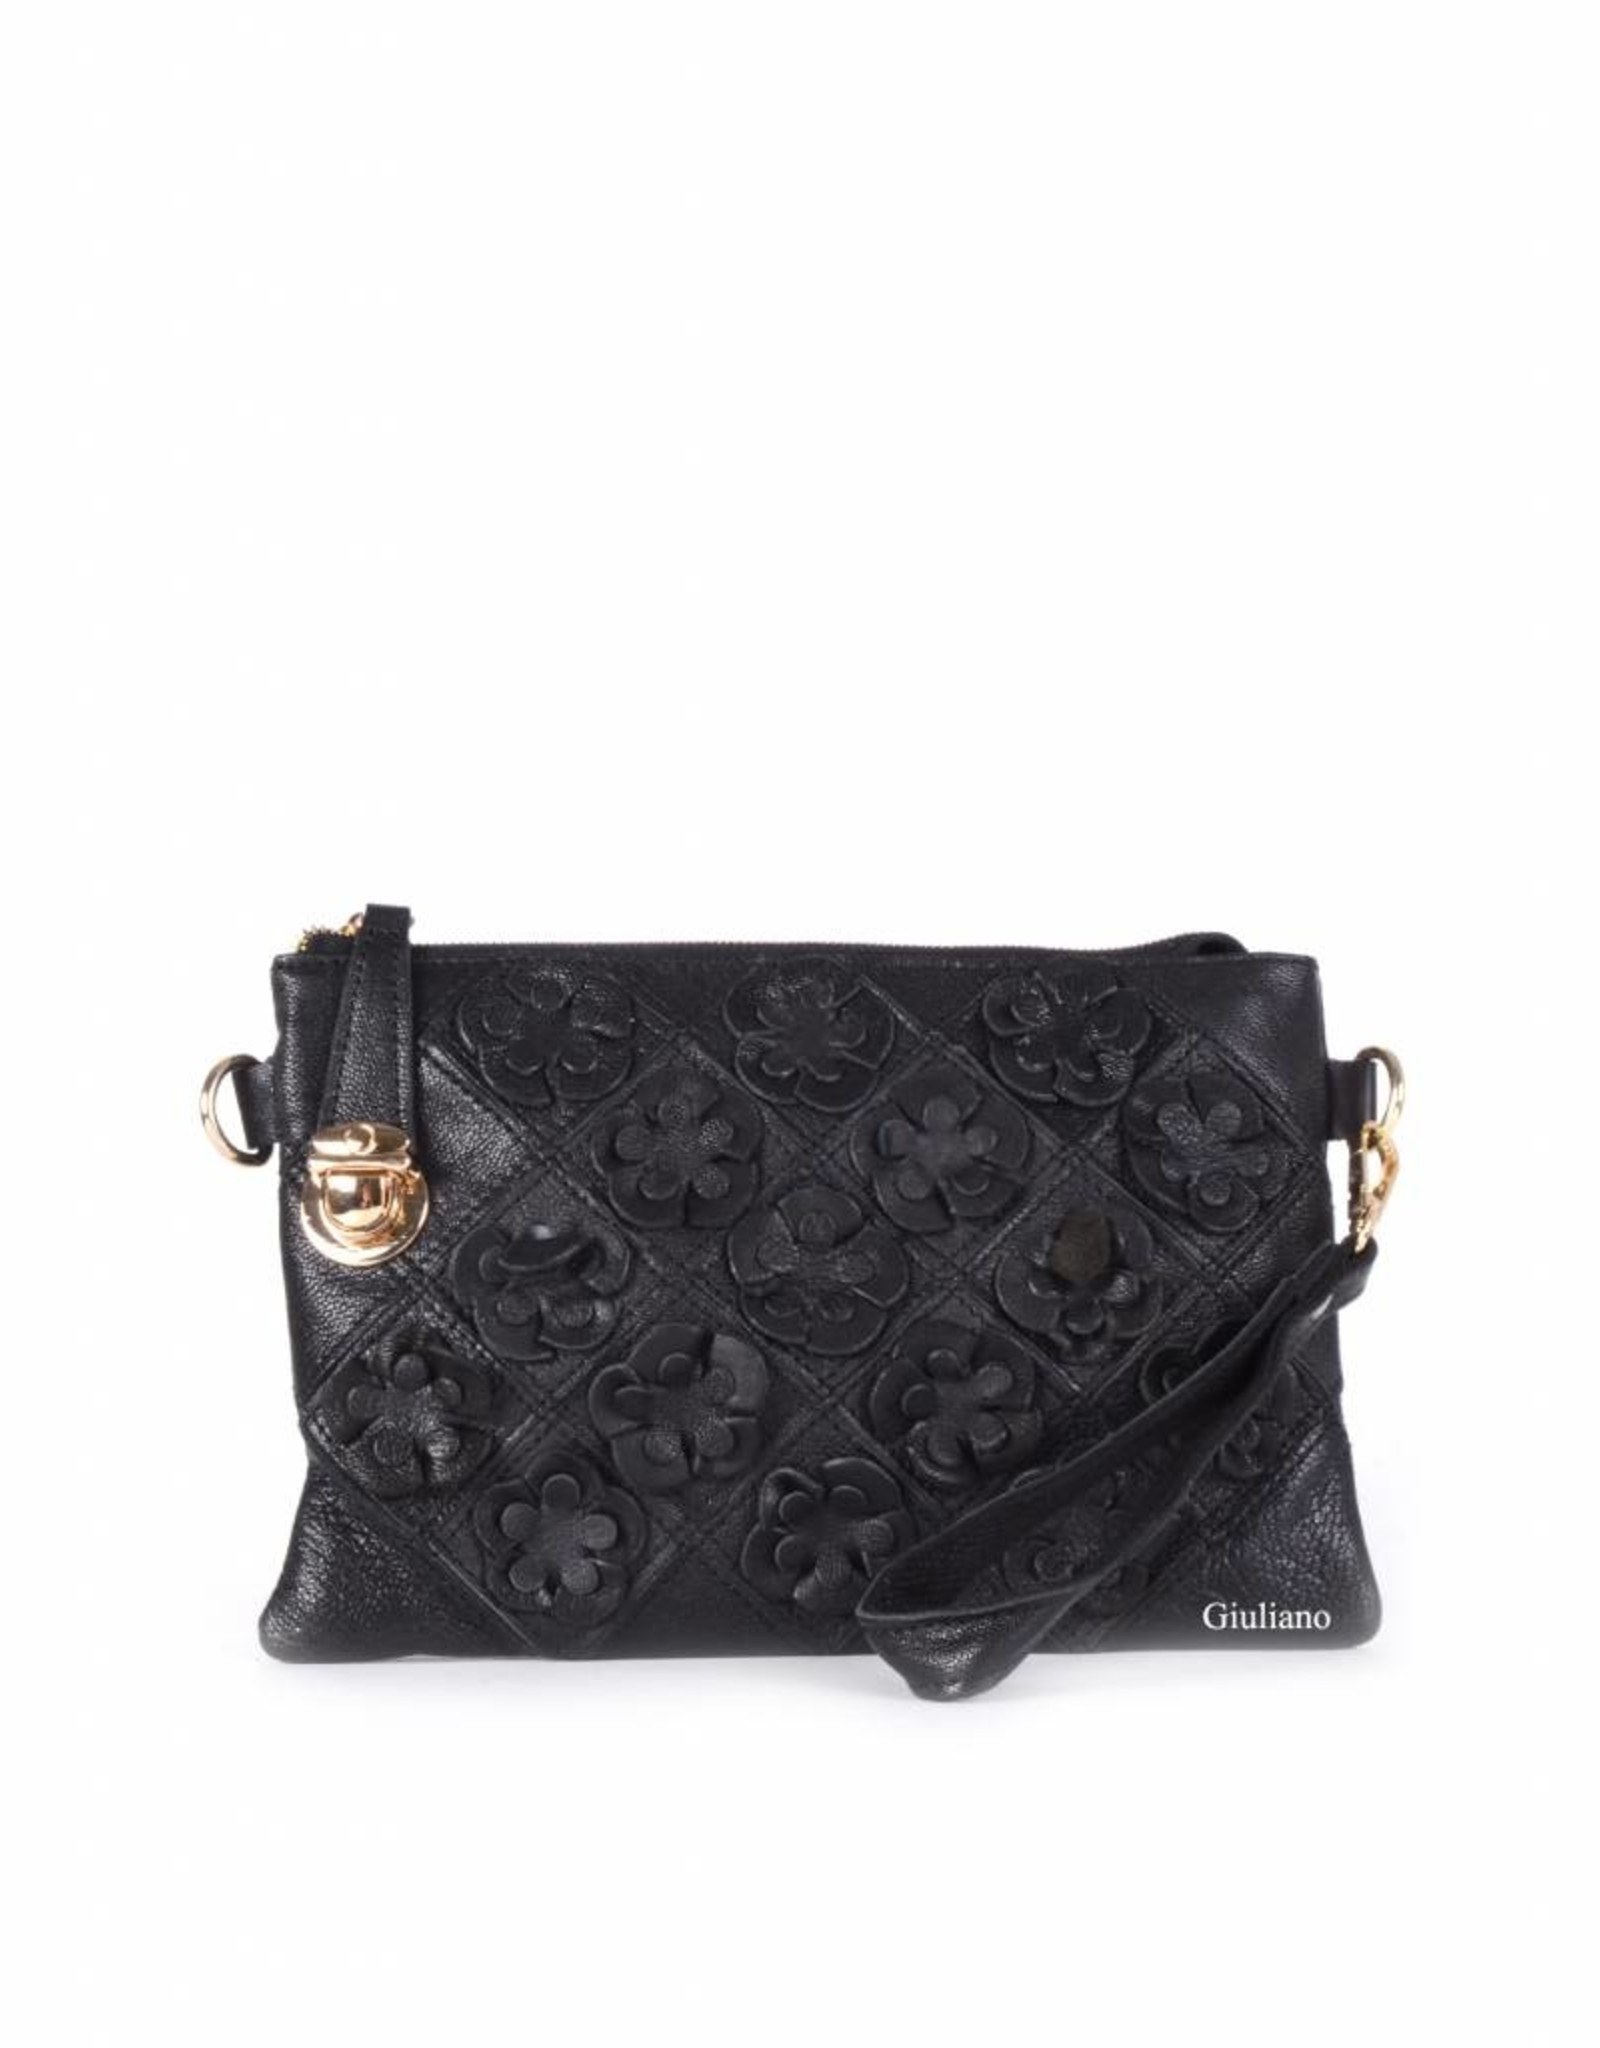 Black clutch with flowers